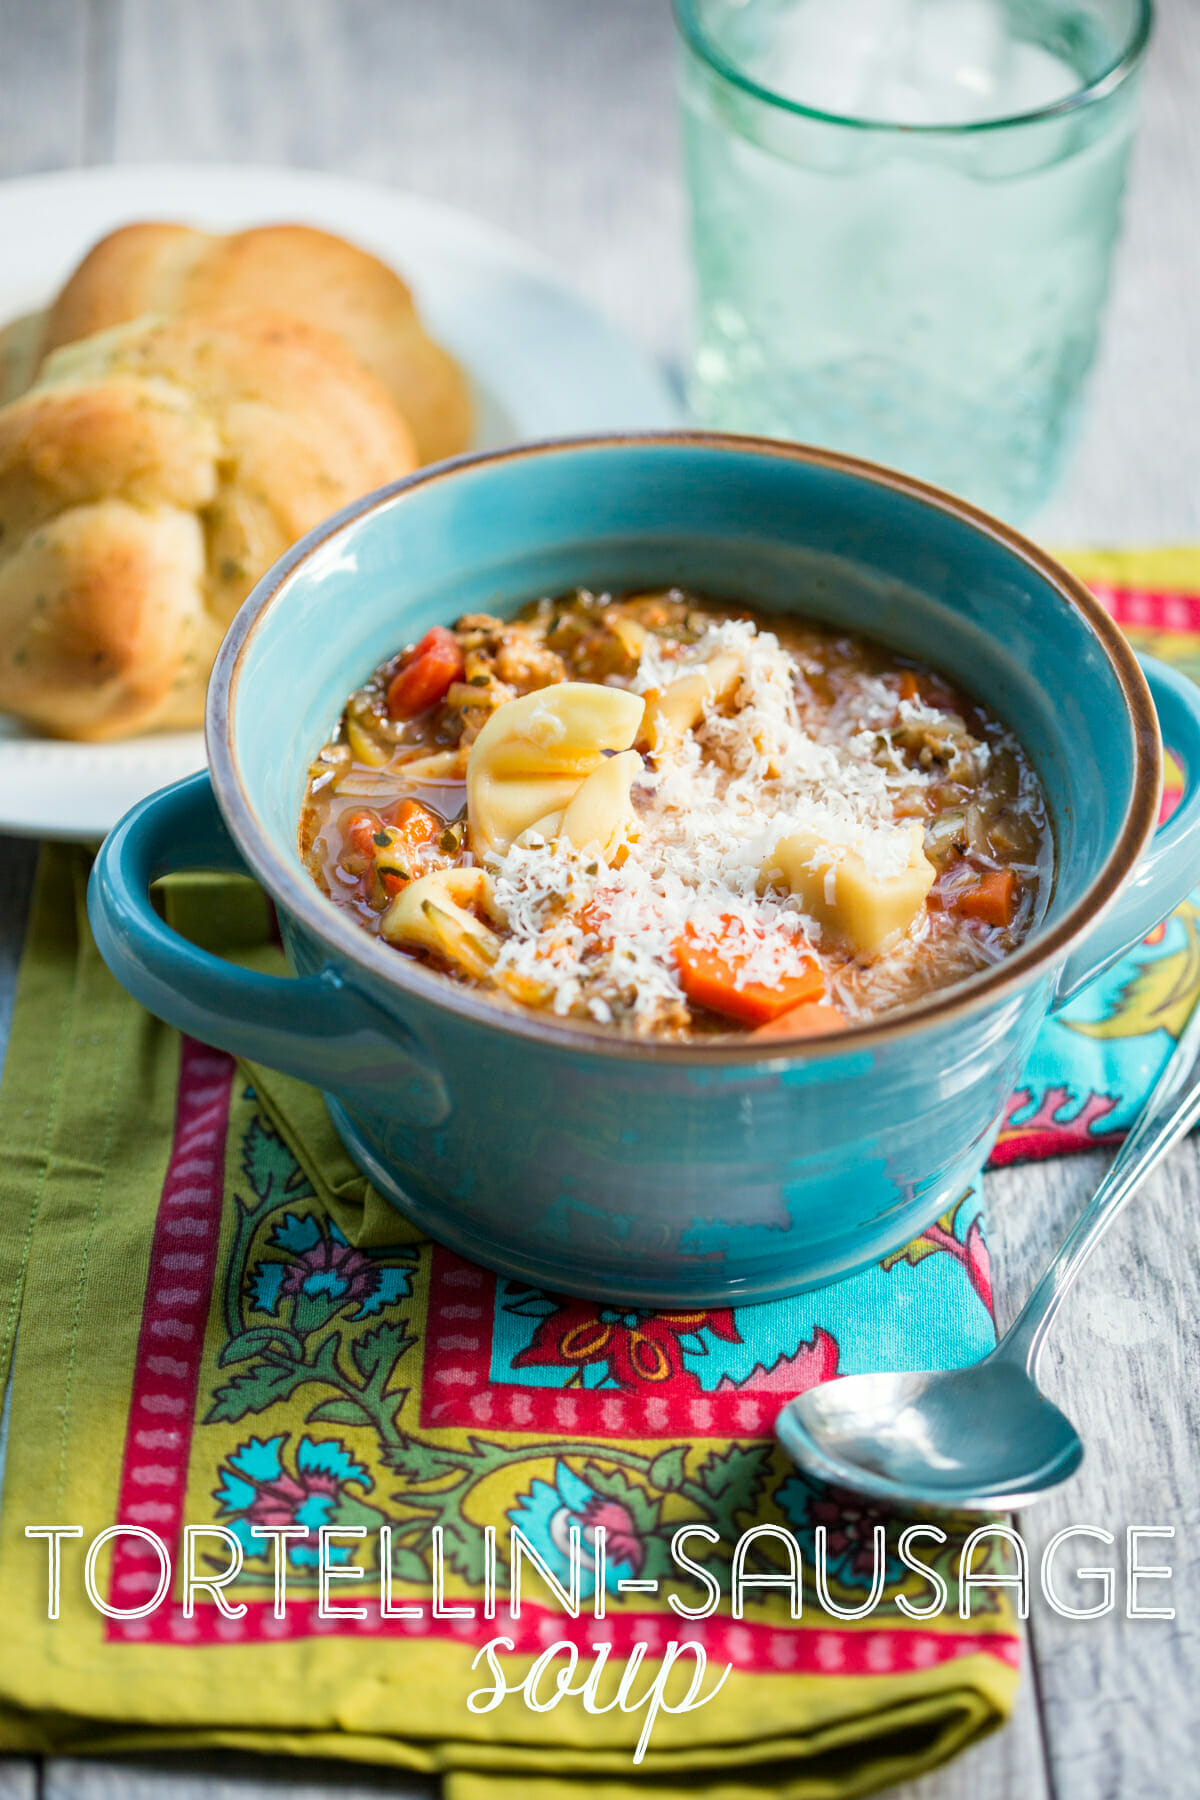 This Tortellini Sausage Soup from Our Best Bites is comfort food at its finest! Loaded with Italian sausage, garden-fresh vegetables, and cheesy tortellini!